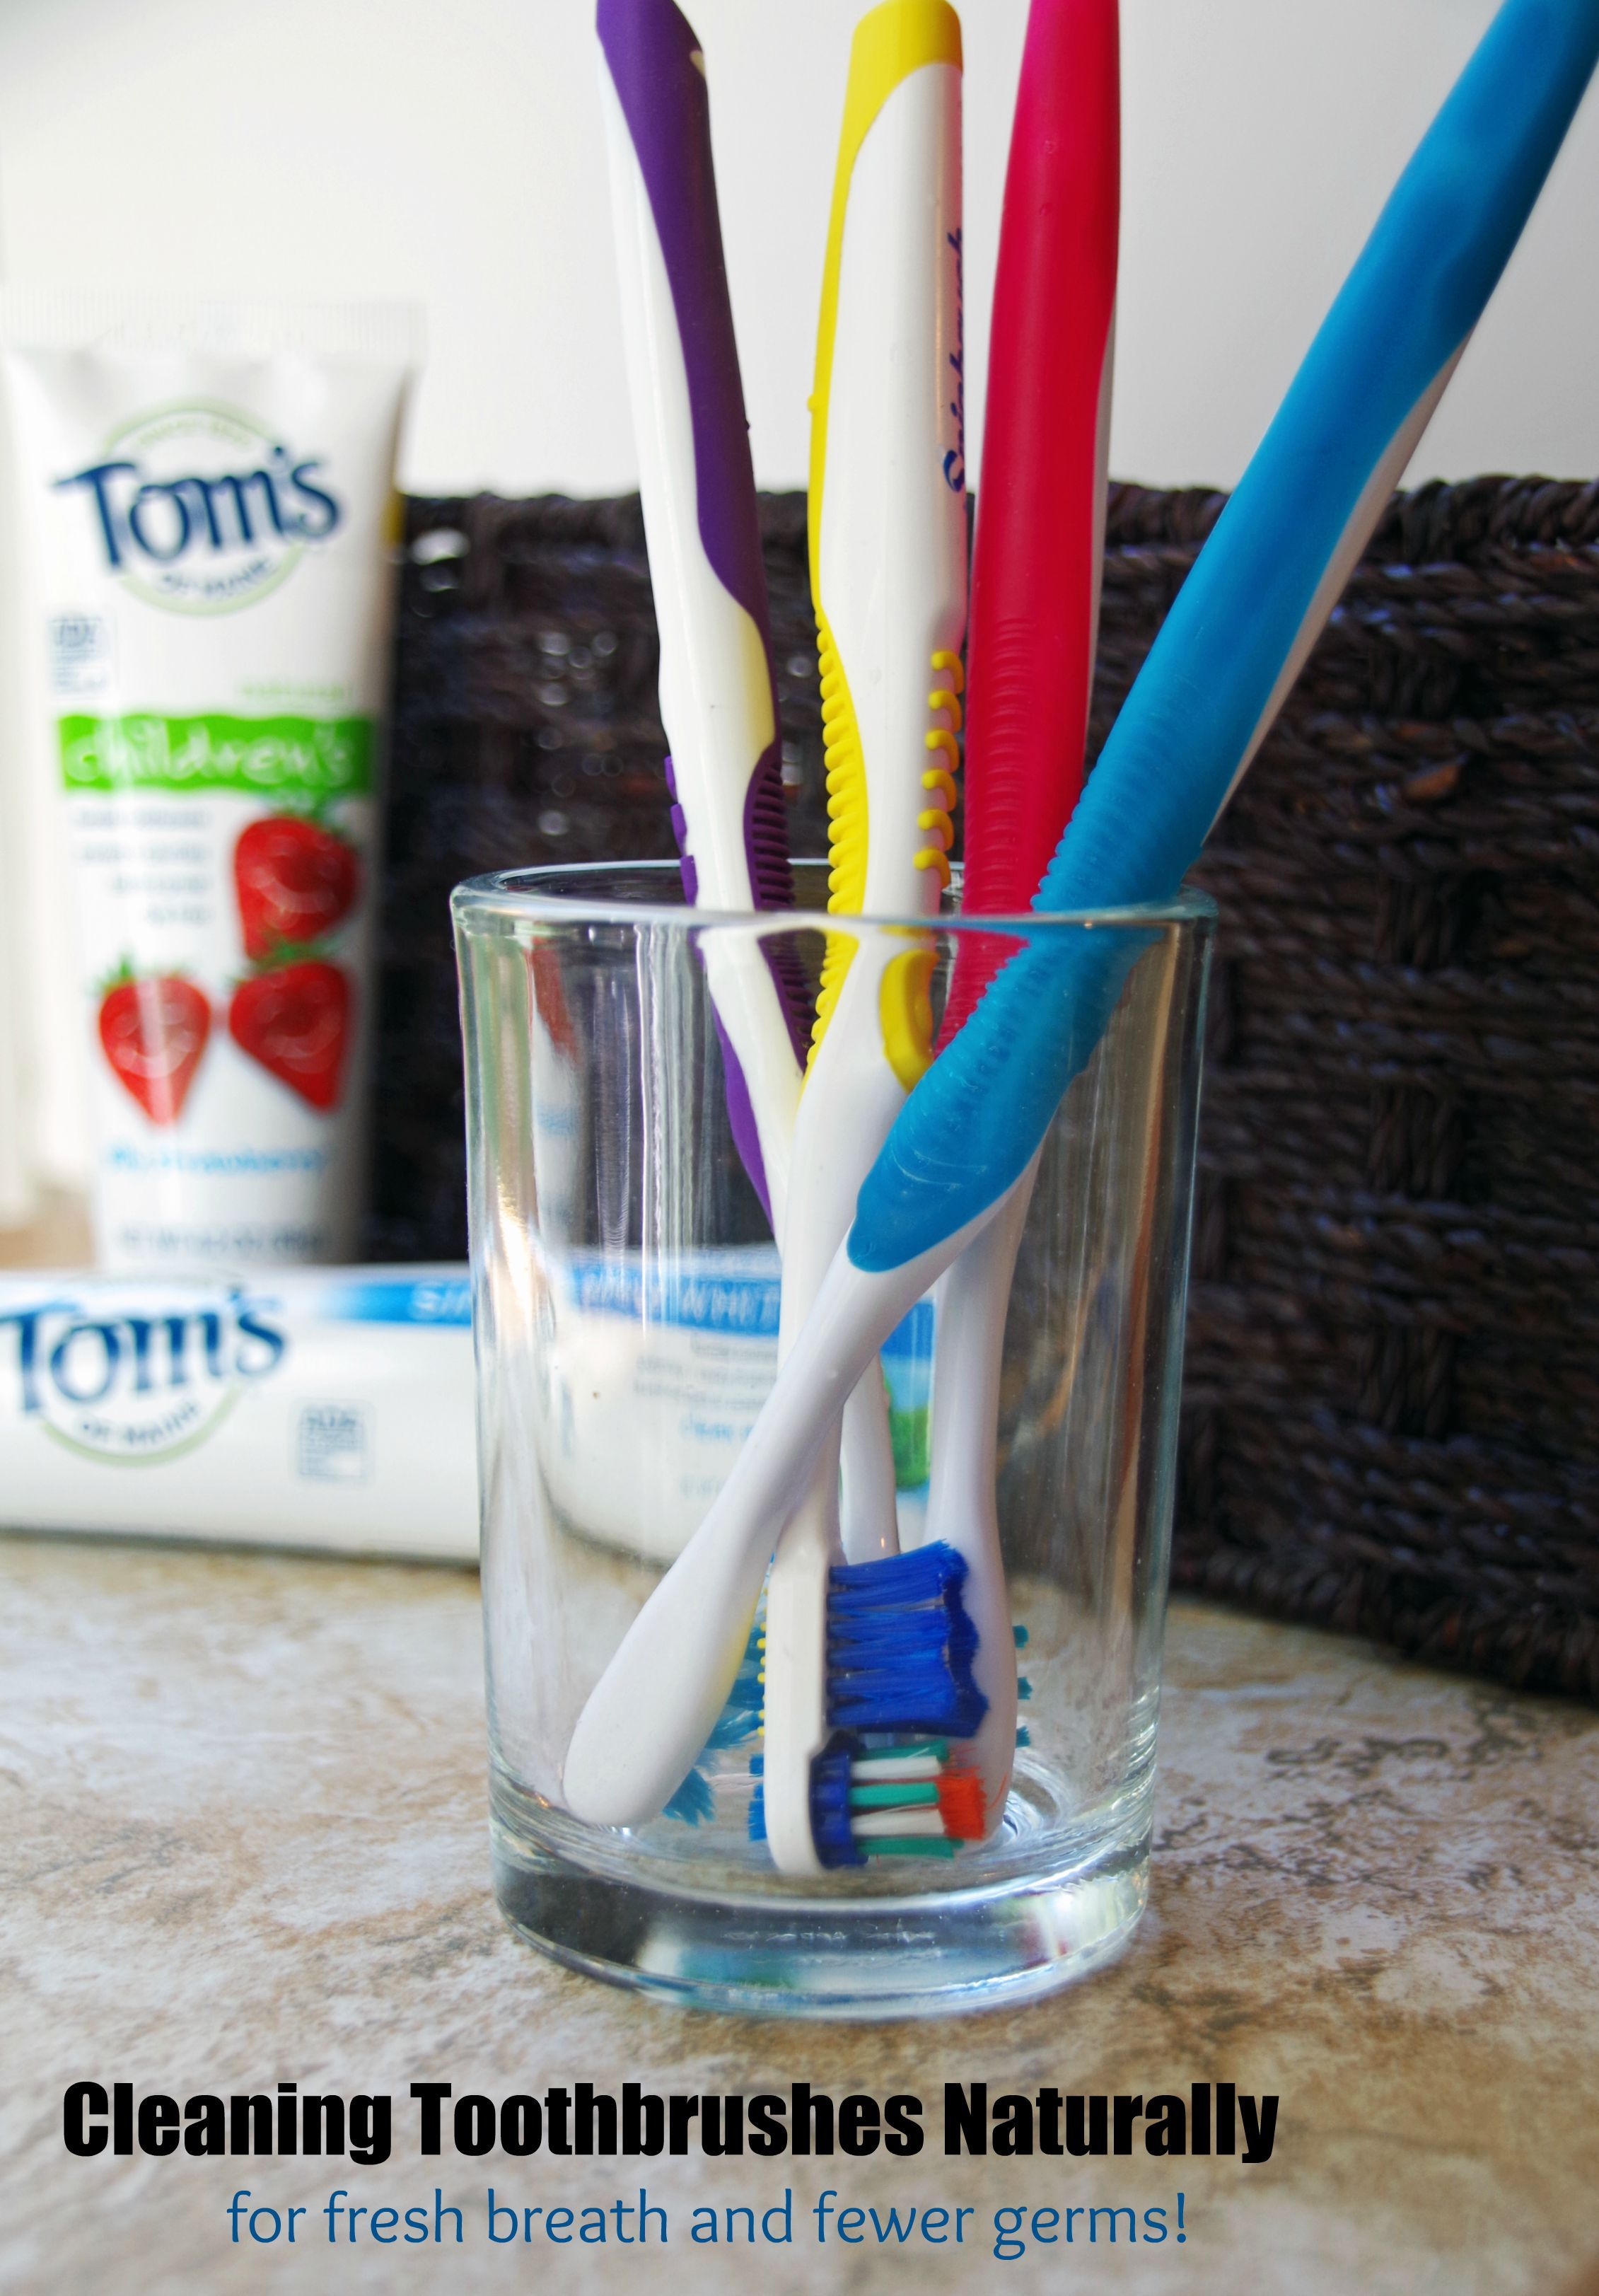 Cleaning toothbrushes naturally for fresh breath and fewer